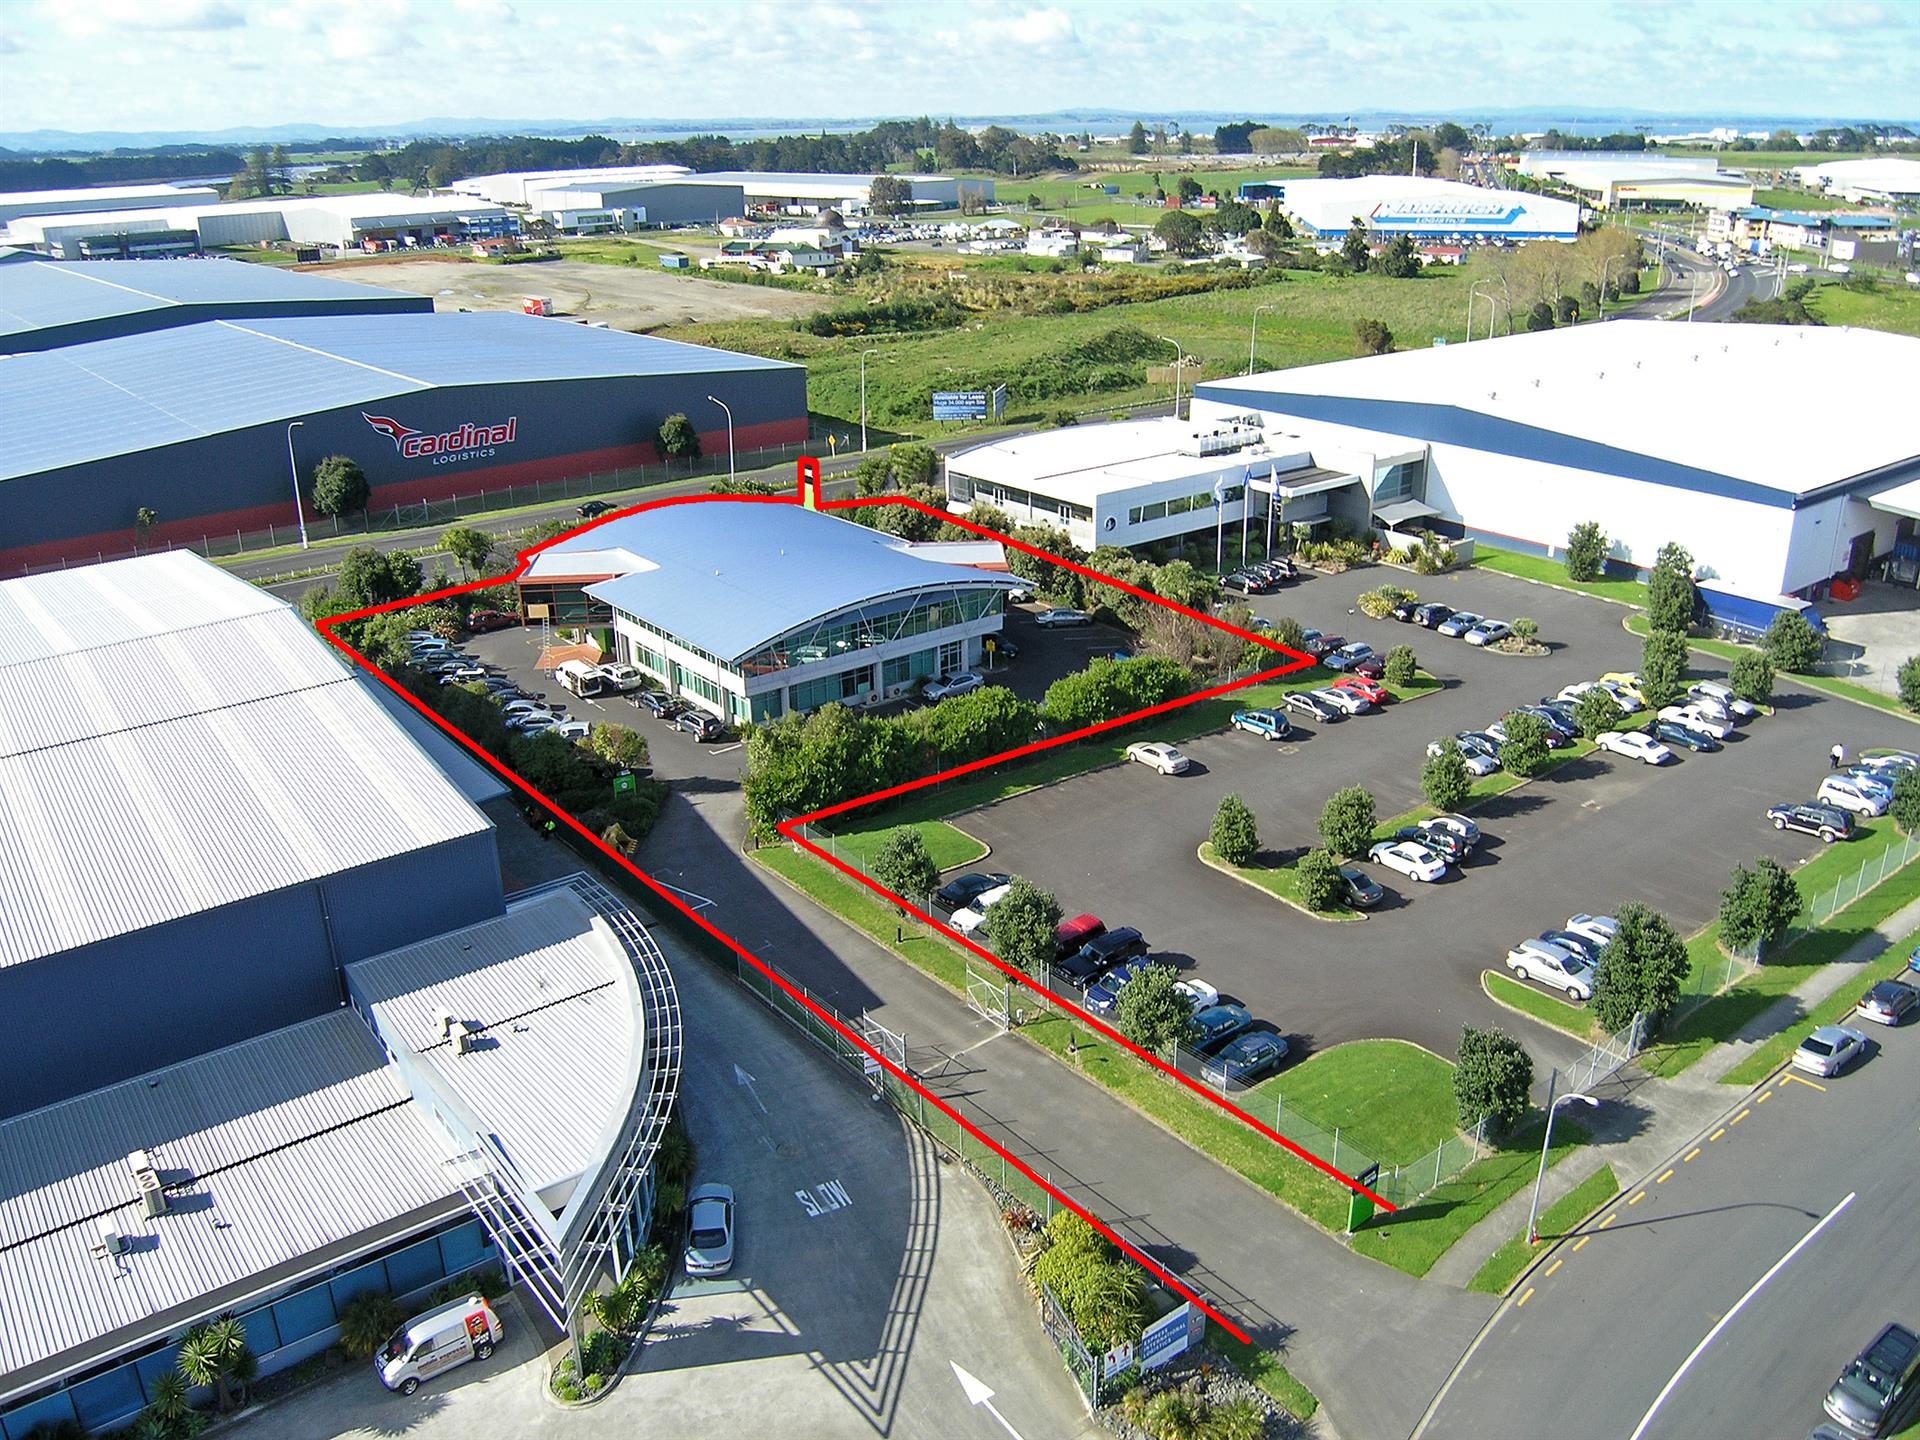 Photo of Downer EDi, 14 Amelia Earhart Avenue, Mangere, Manukau City, Auckland